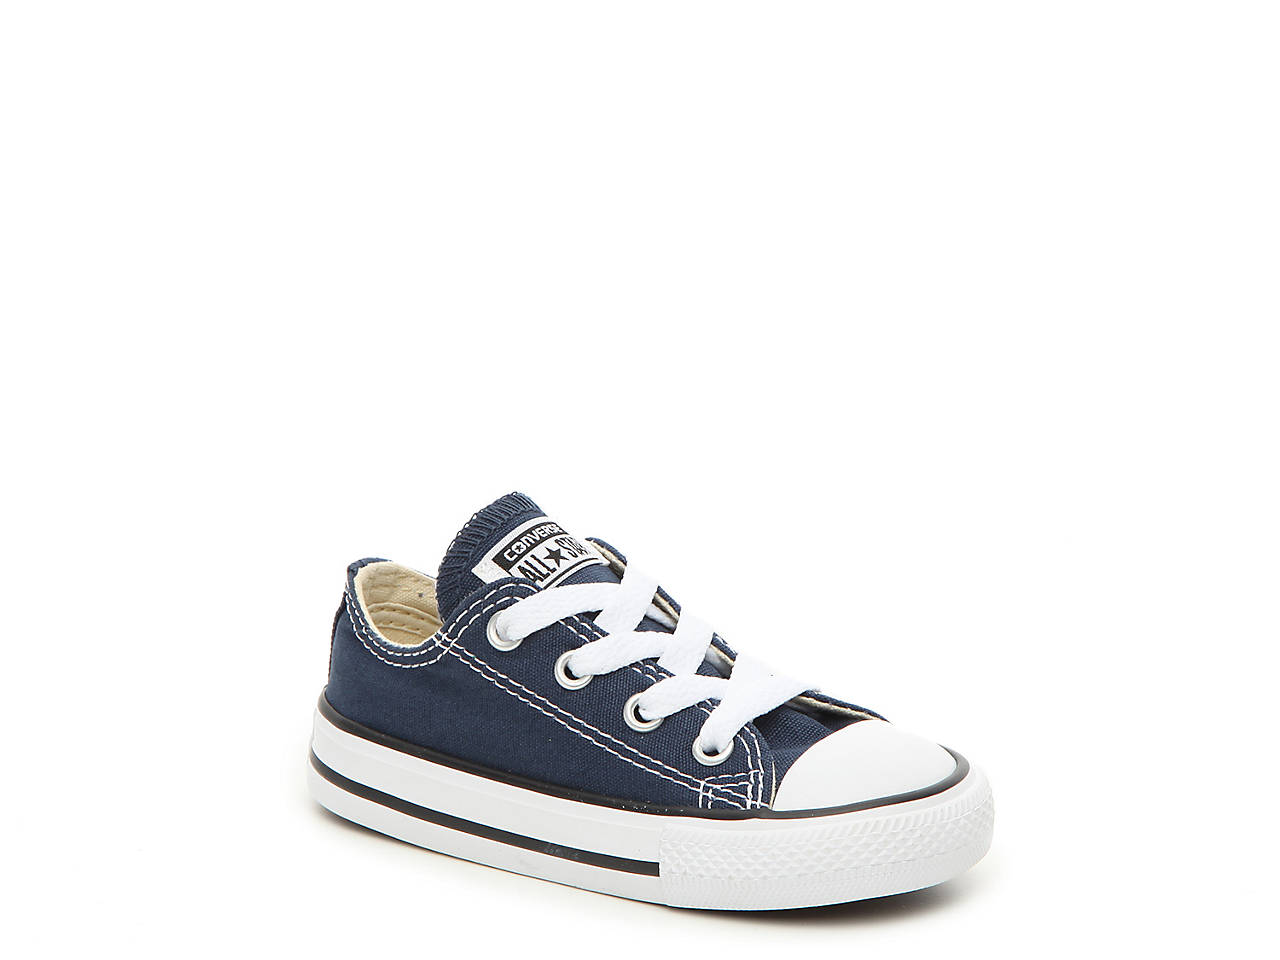 a7aad8c26d56 Converse Chuck Taylor All Star Infant   Toddler Sneaker Kids Shoes